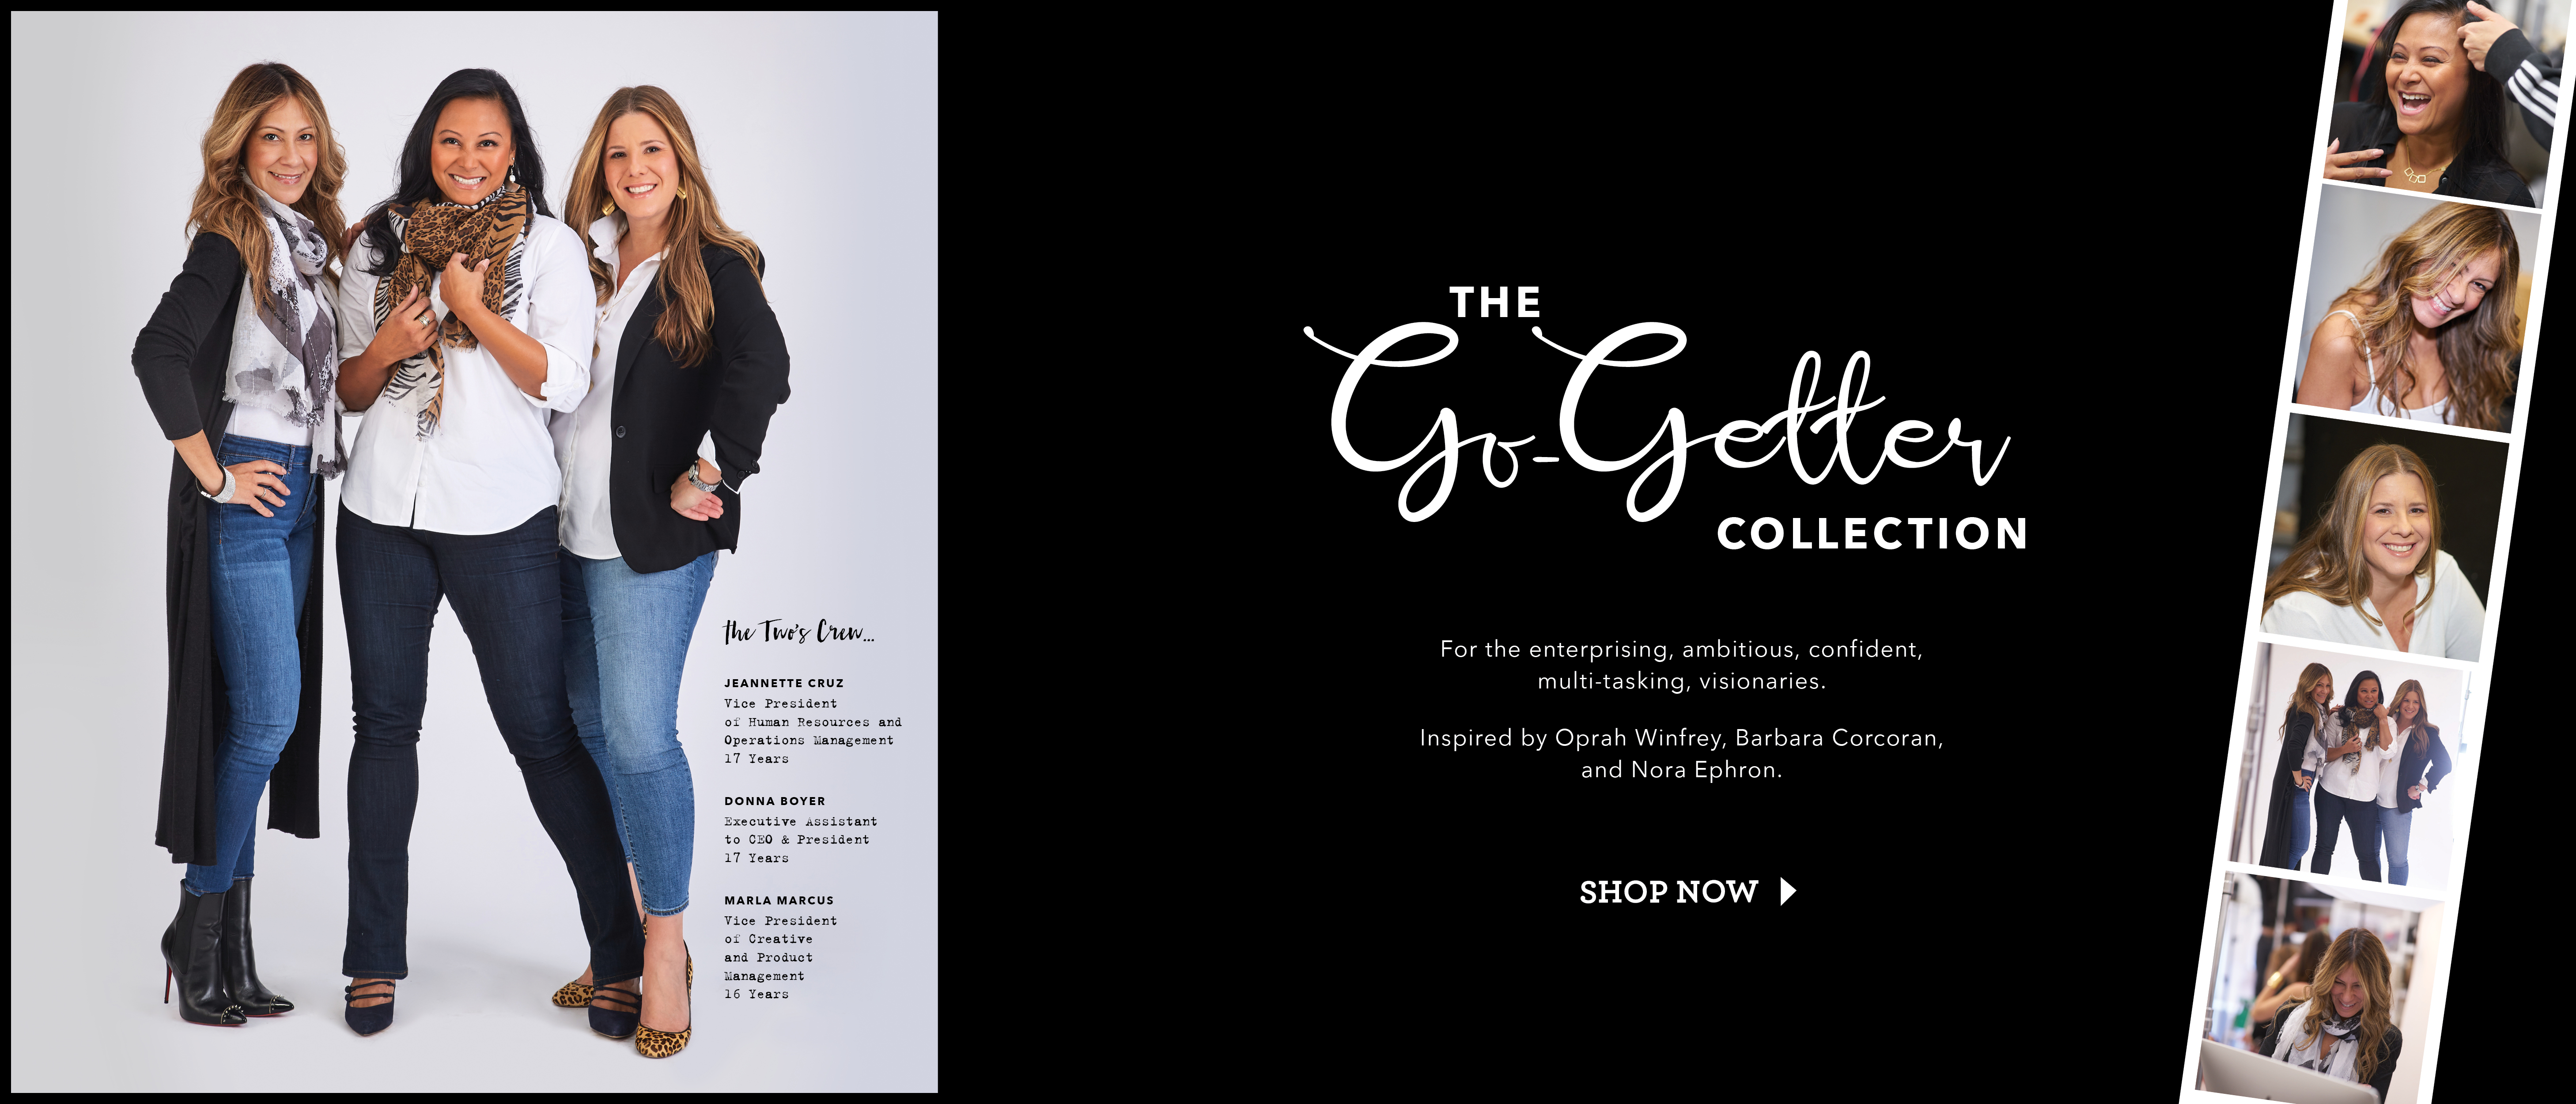 Go-Getter Collection image